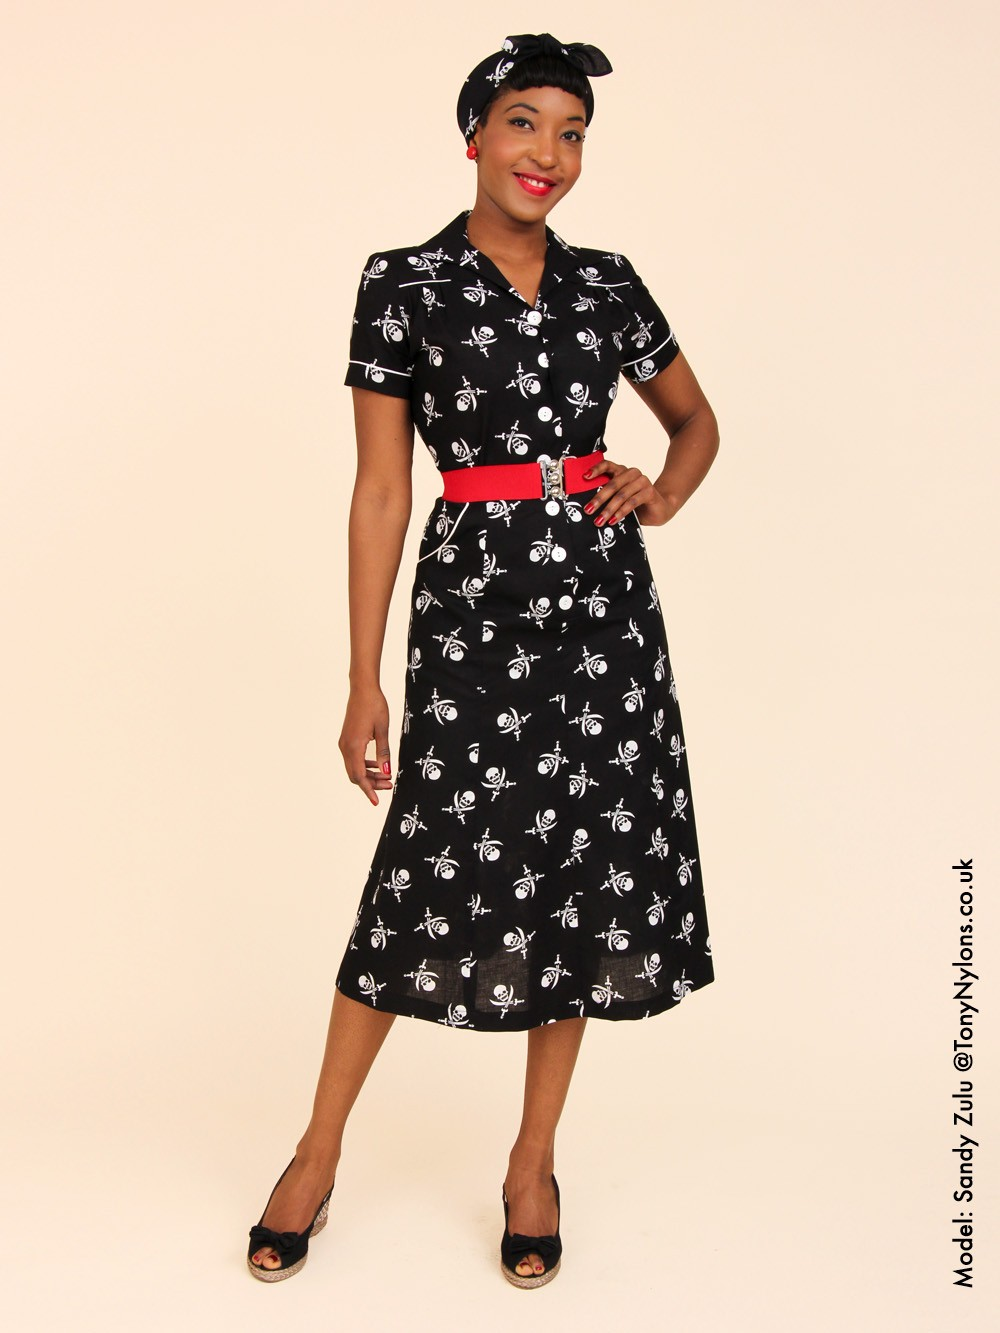 1940s Day Wear: 1940s Style Tea Dress Pirate From Vivien Of Holloway